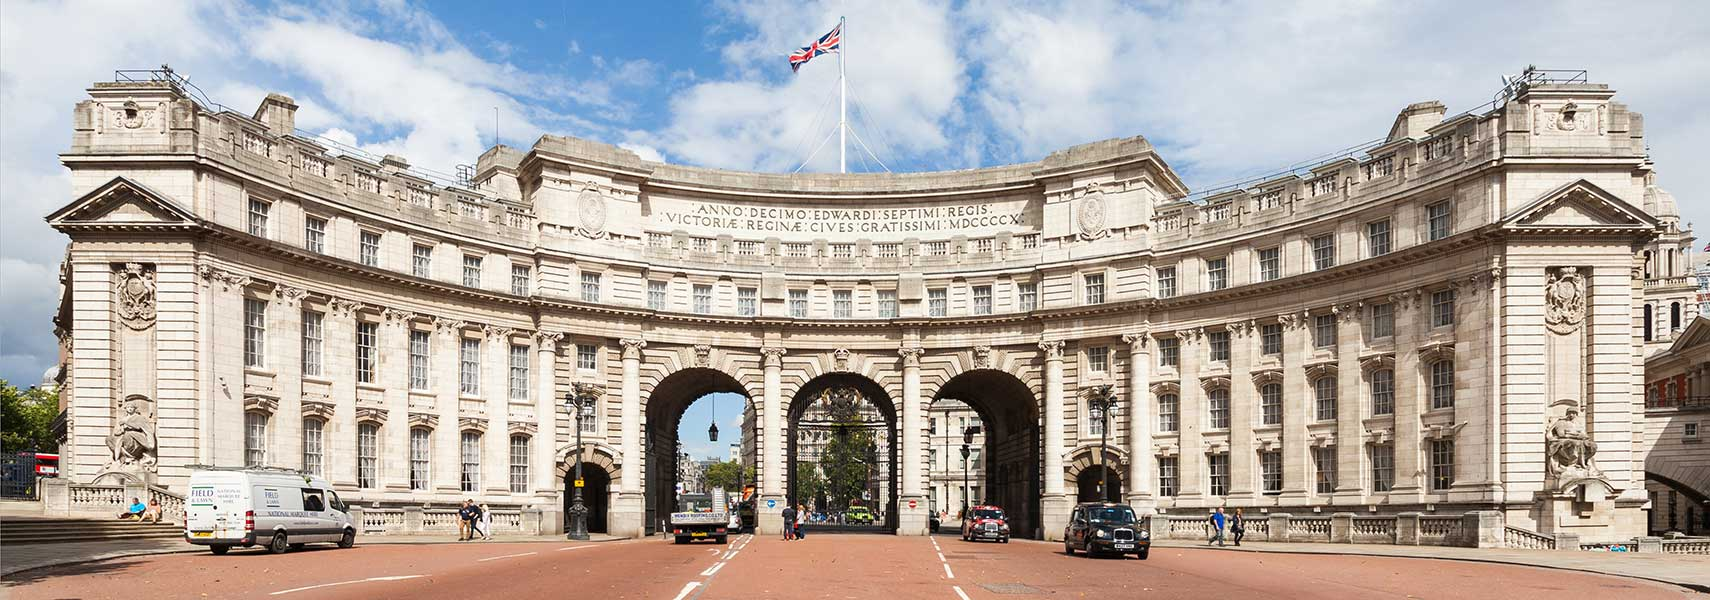 United Kingdom   Country Profile   Nations Online Project Admiralty Arch with The Mall  London  England